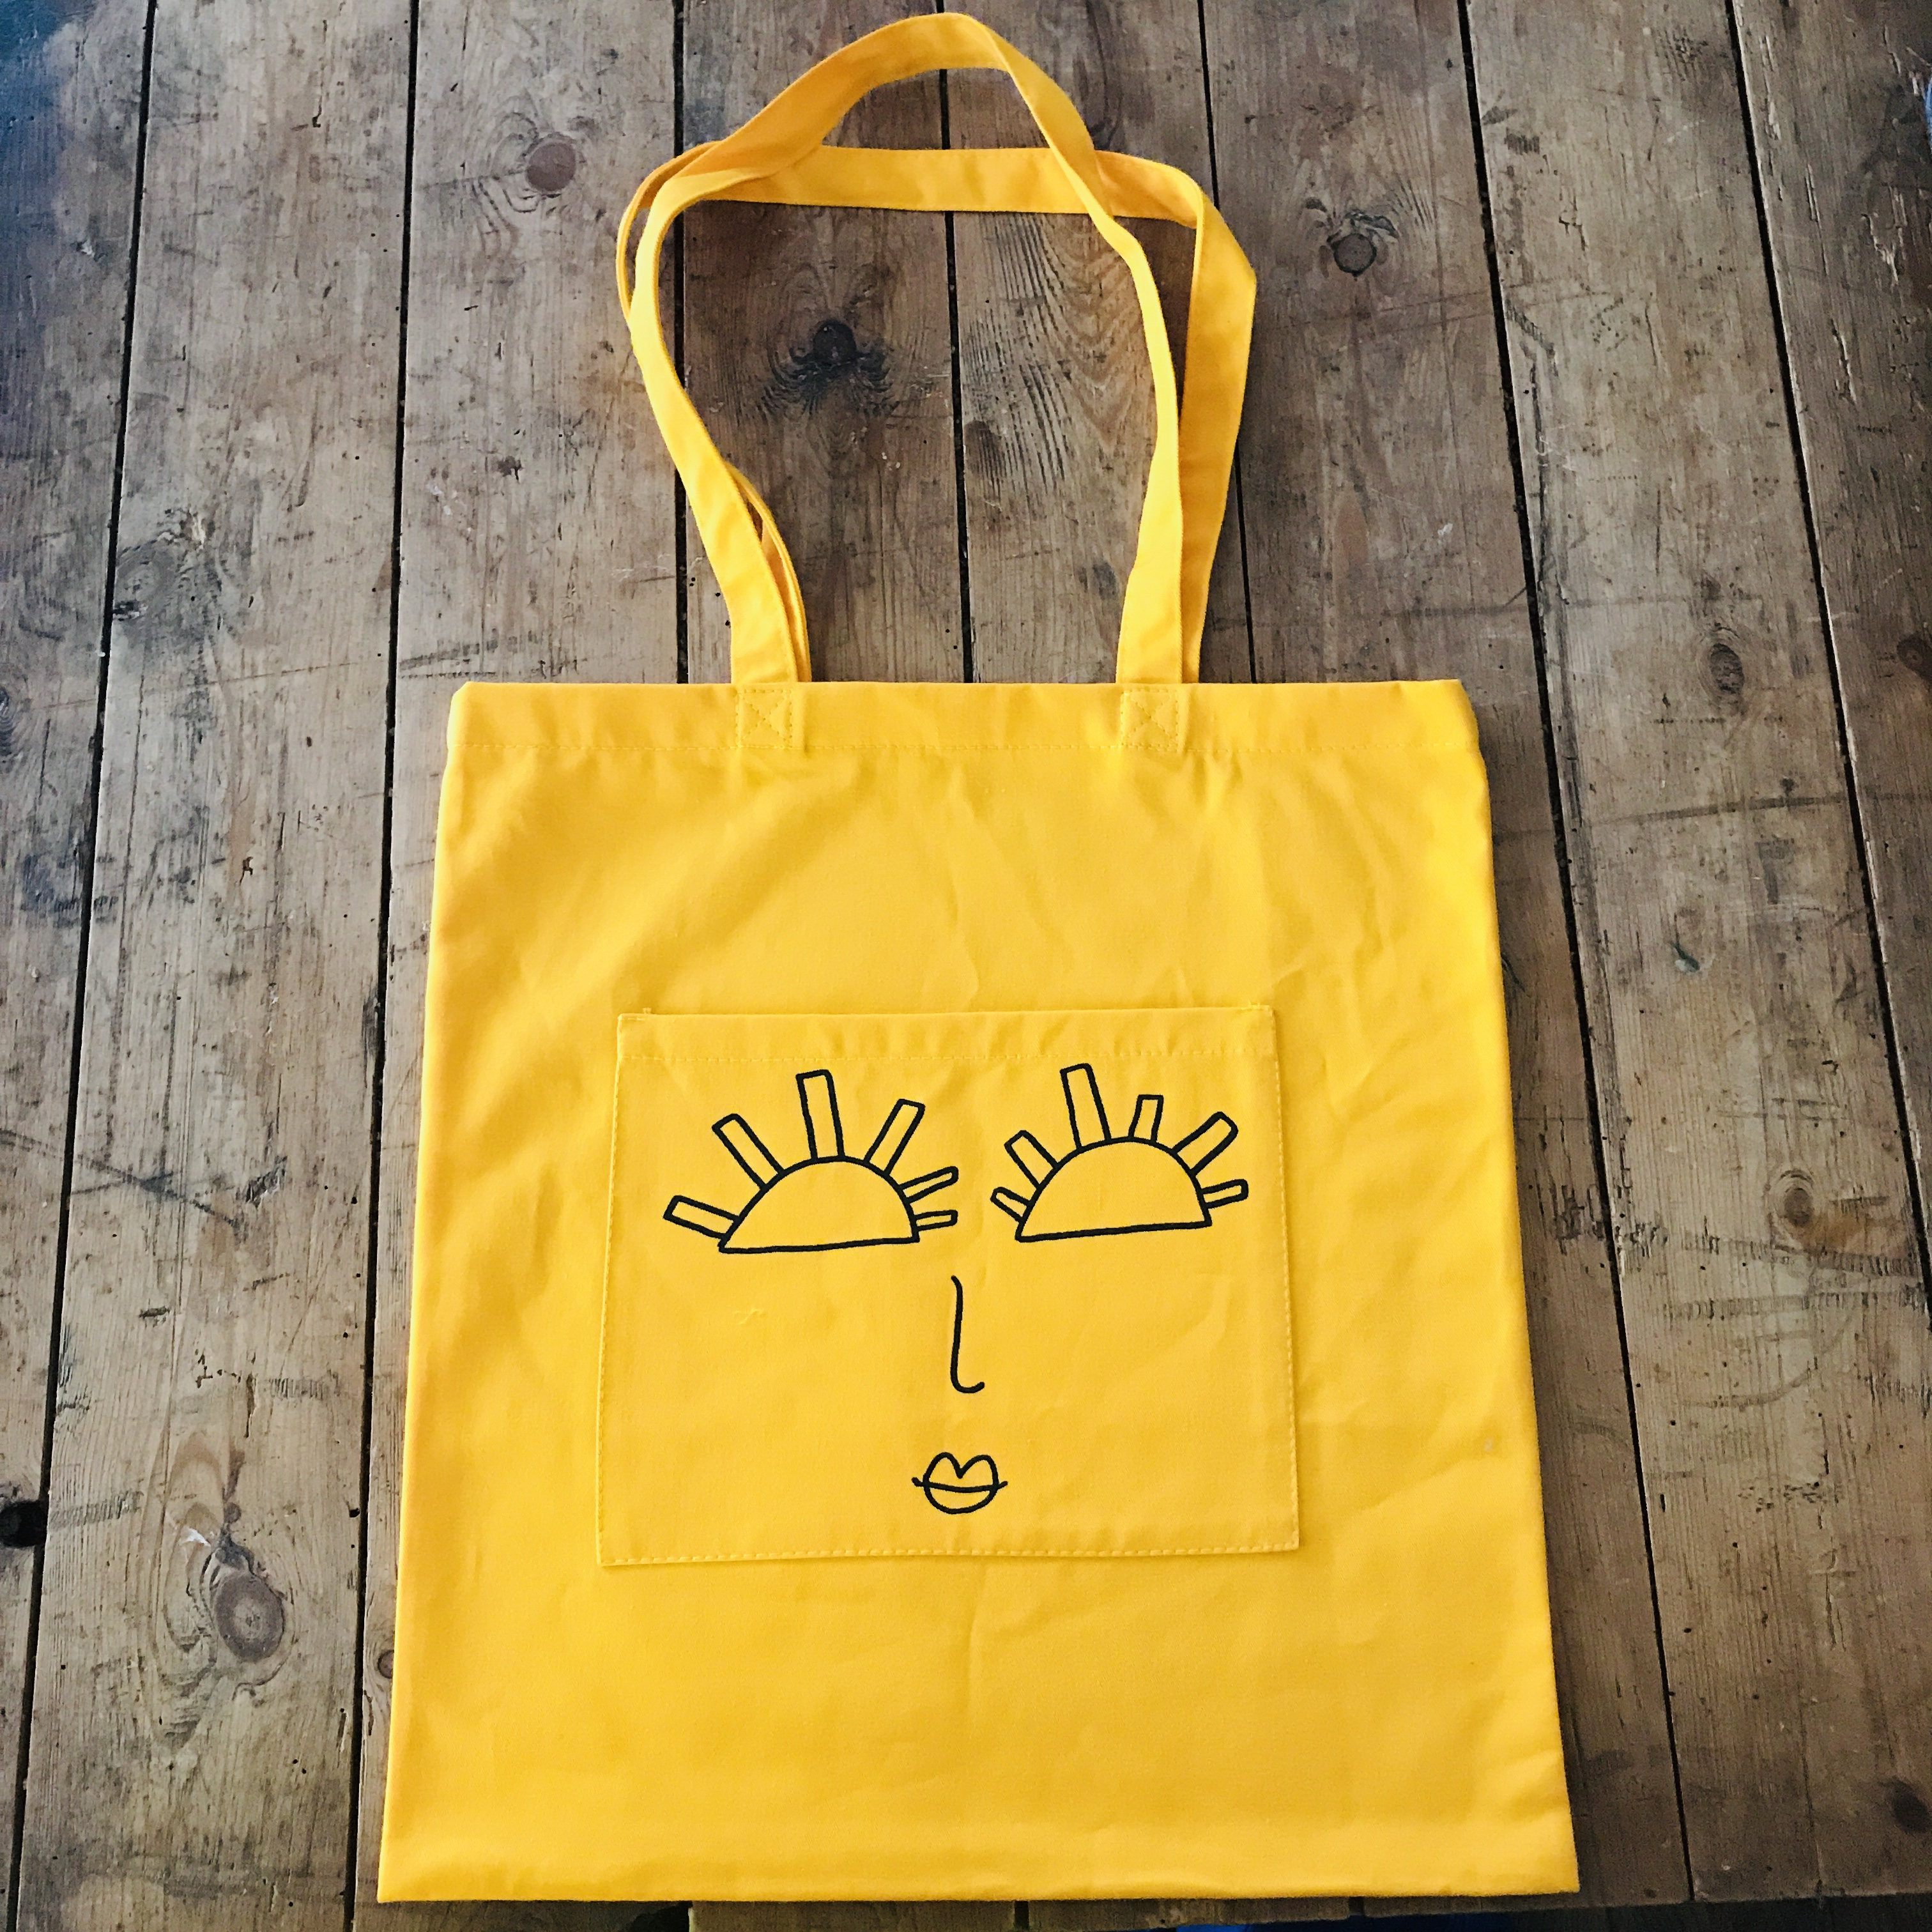 YELLOW SUNRISE POCKET TOTE - Jessie Cave